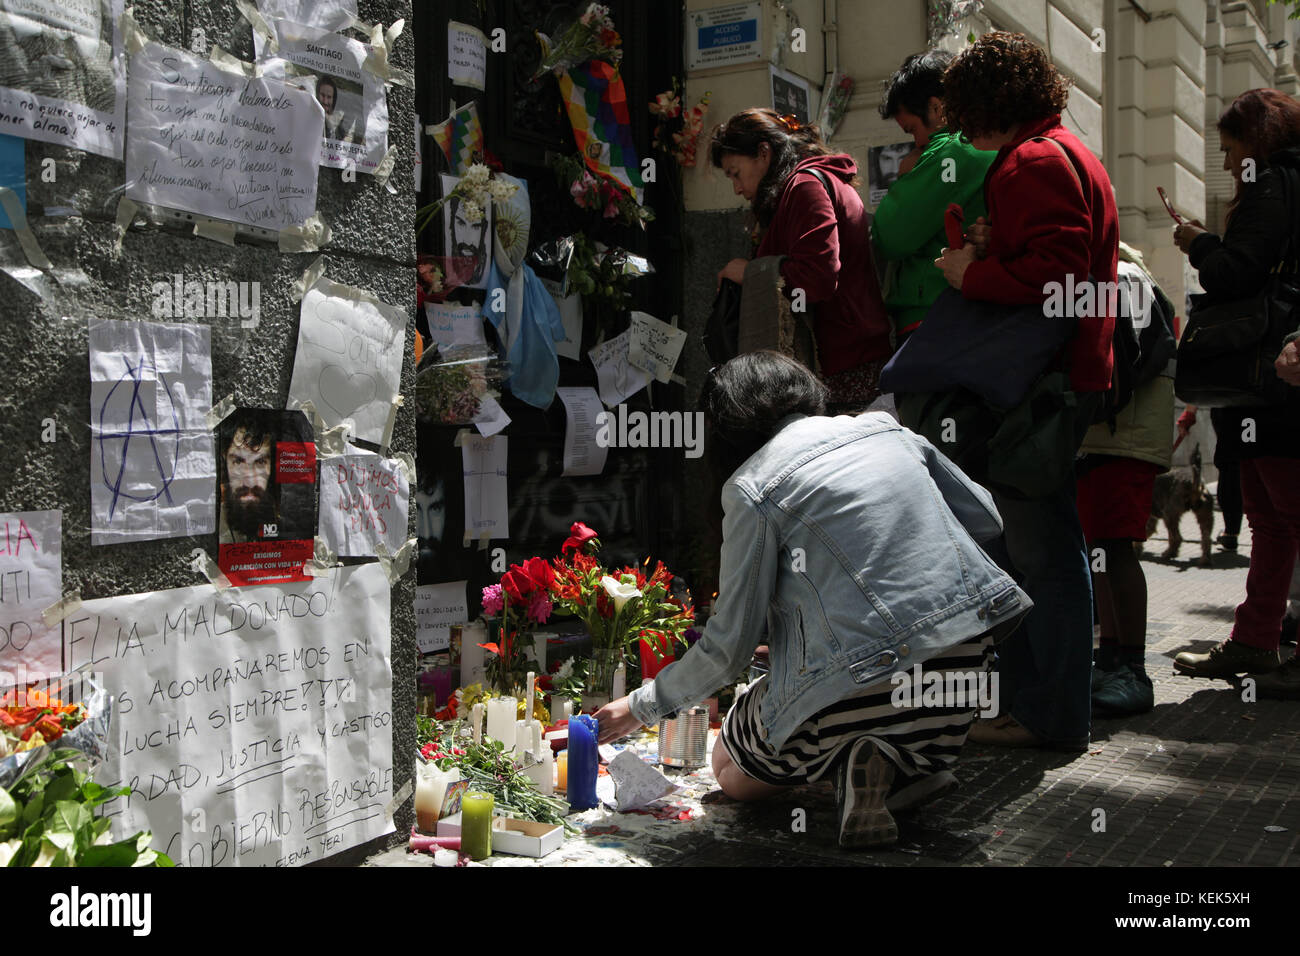 Buenos Aires, Buenos Aires, Argentina. 21st Oct, 2017. After confirming the identity of the corpse of Santiago Maldonado, - Stock Image